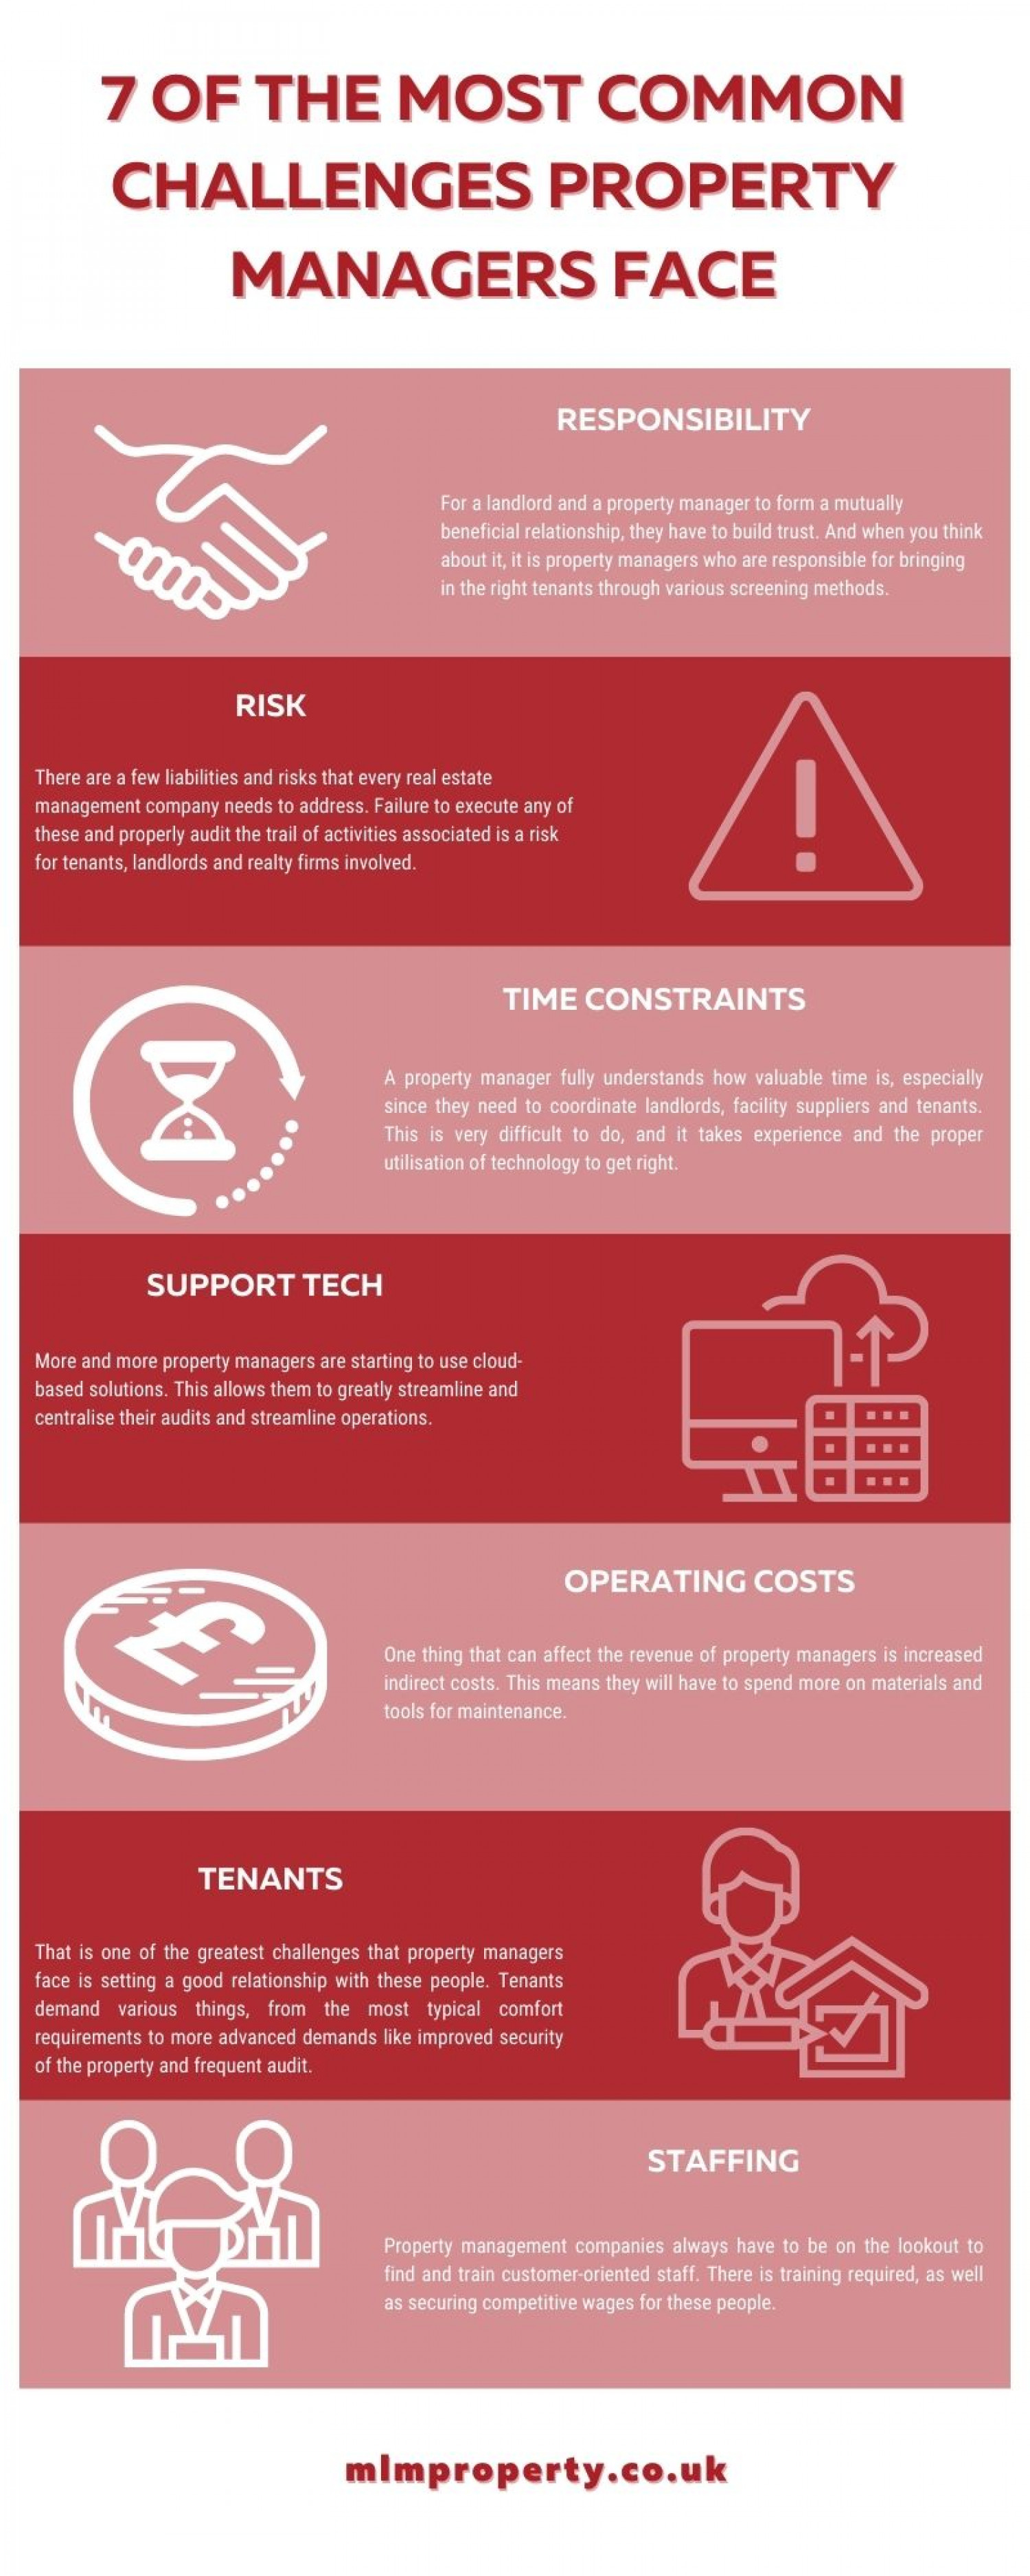 7 of the Most Common Challenges Property Managers Face Infographic